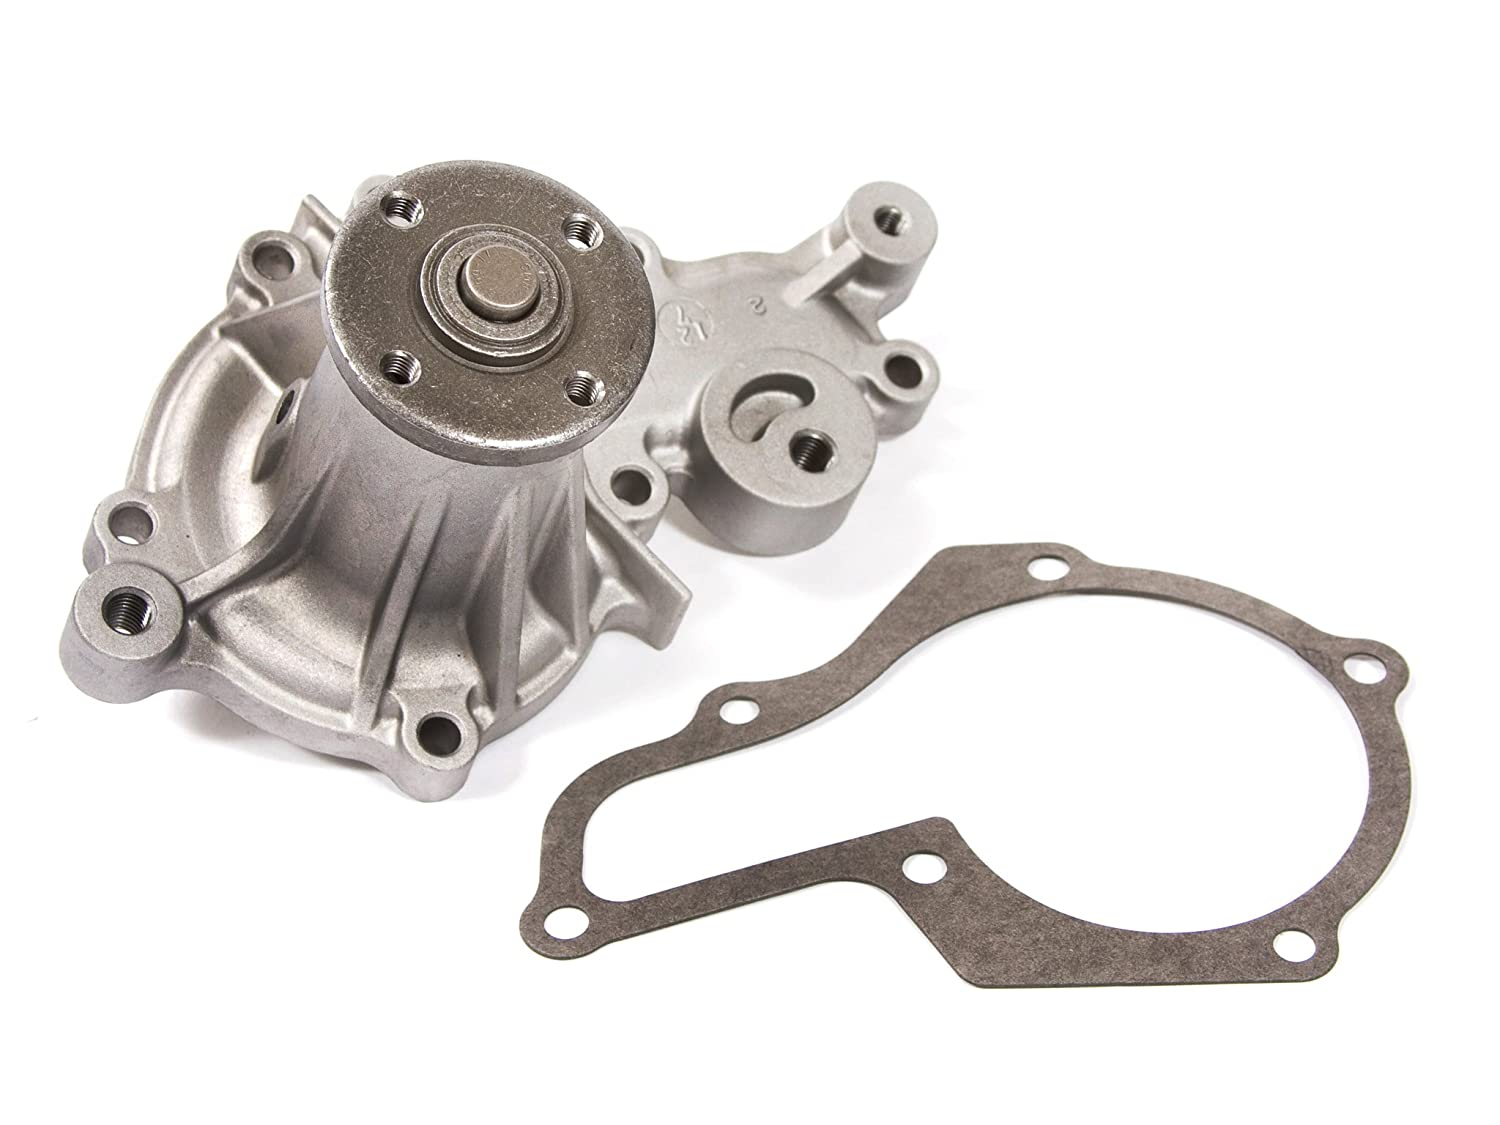 Amazon.com: Evergreen TBK095WPT Fits Suzuki G13A 8-Valves SOHC Timing Belt Kit w/Water Pump: Automotive